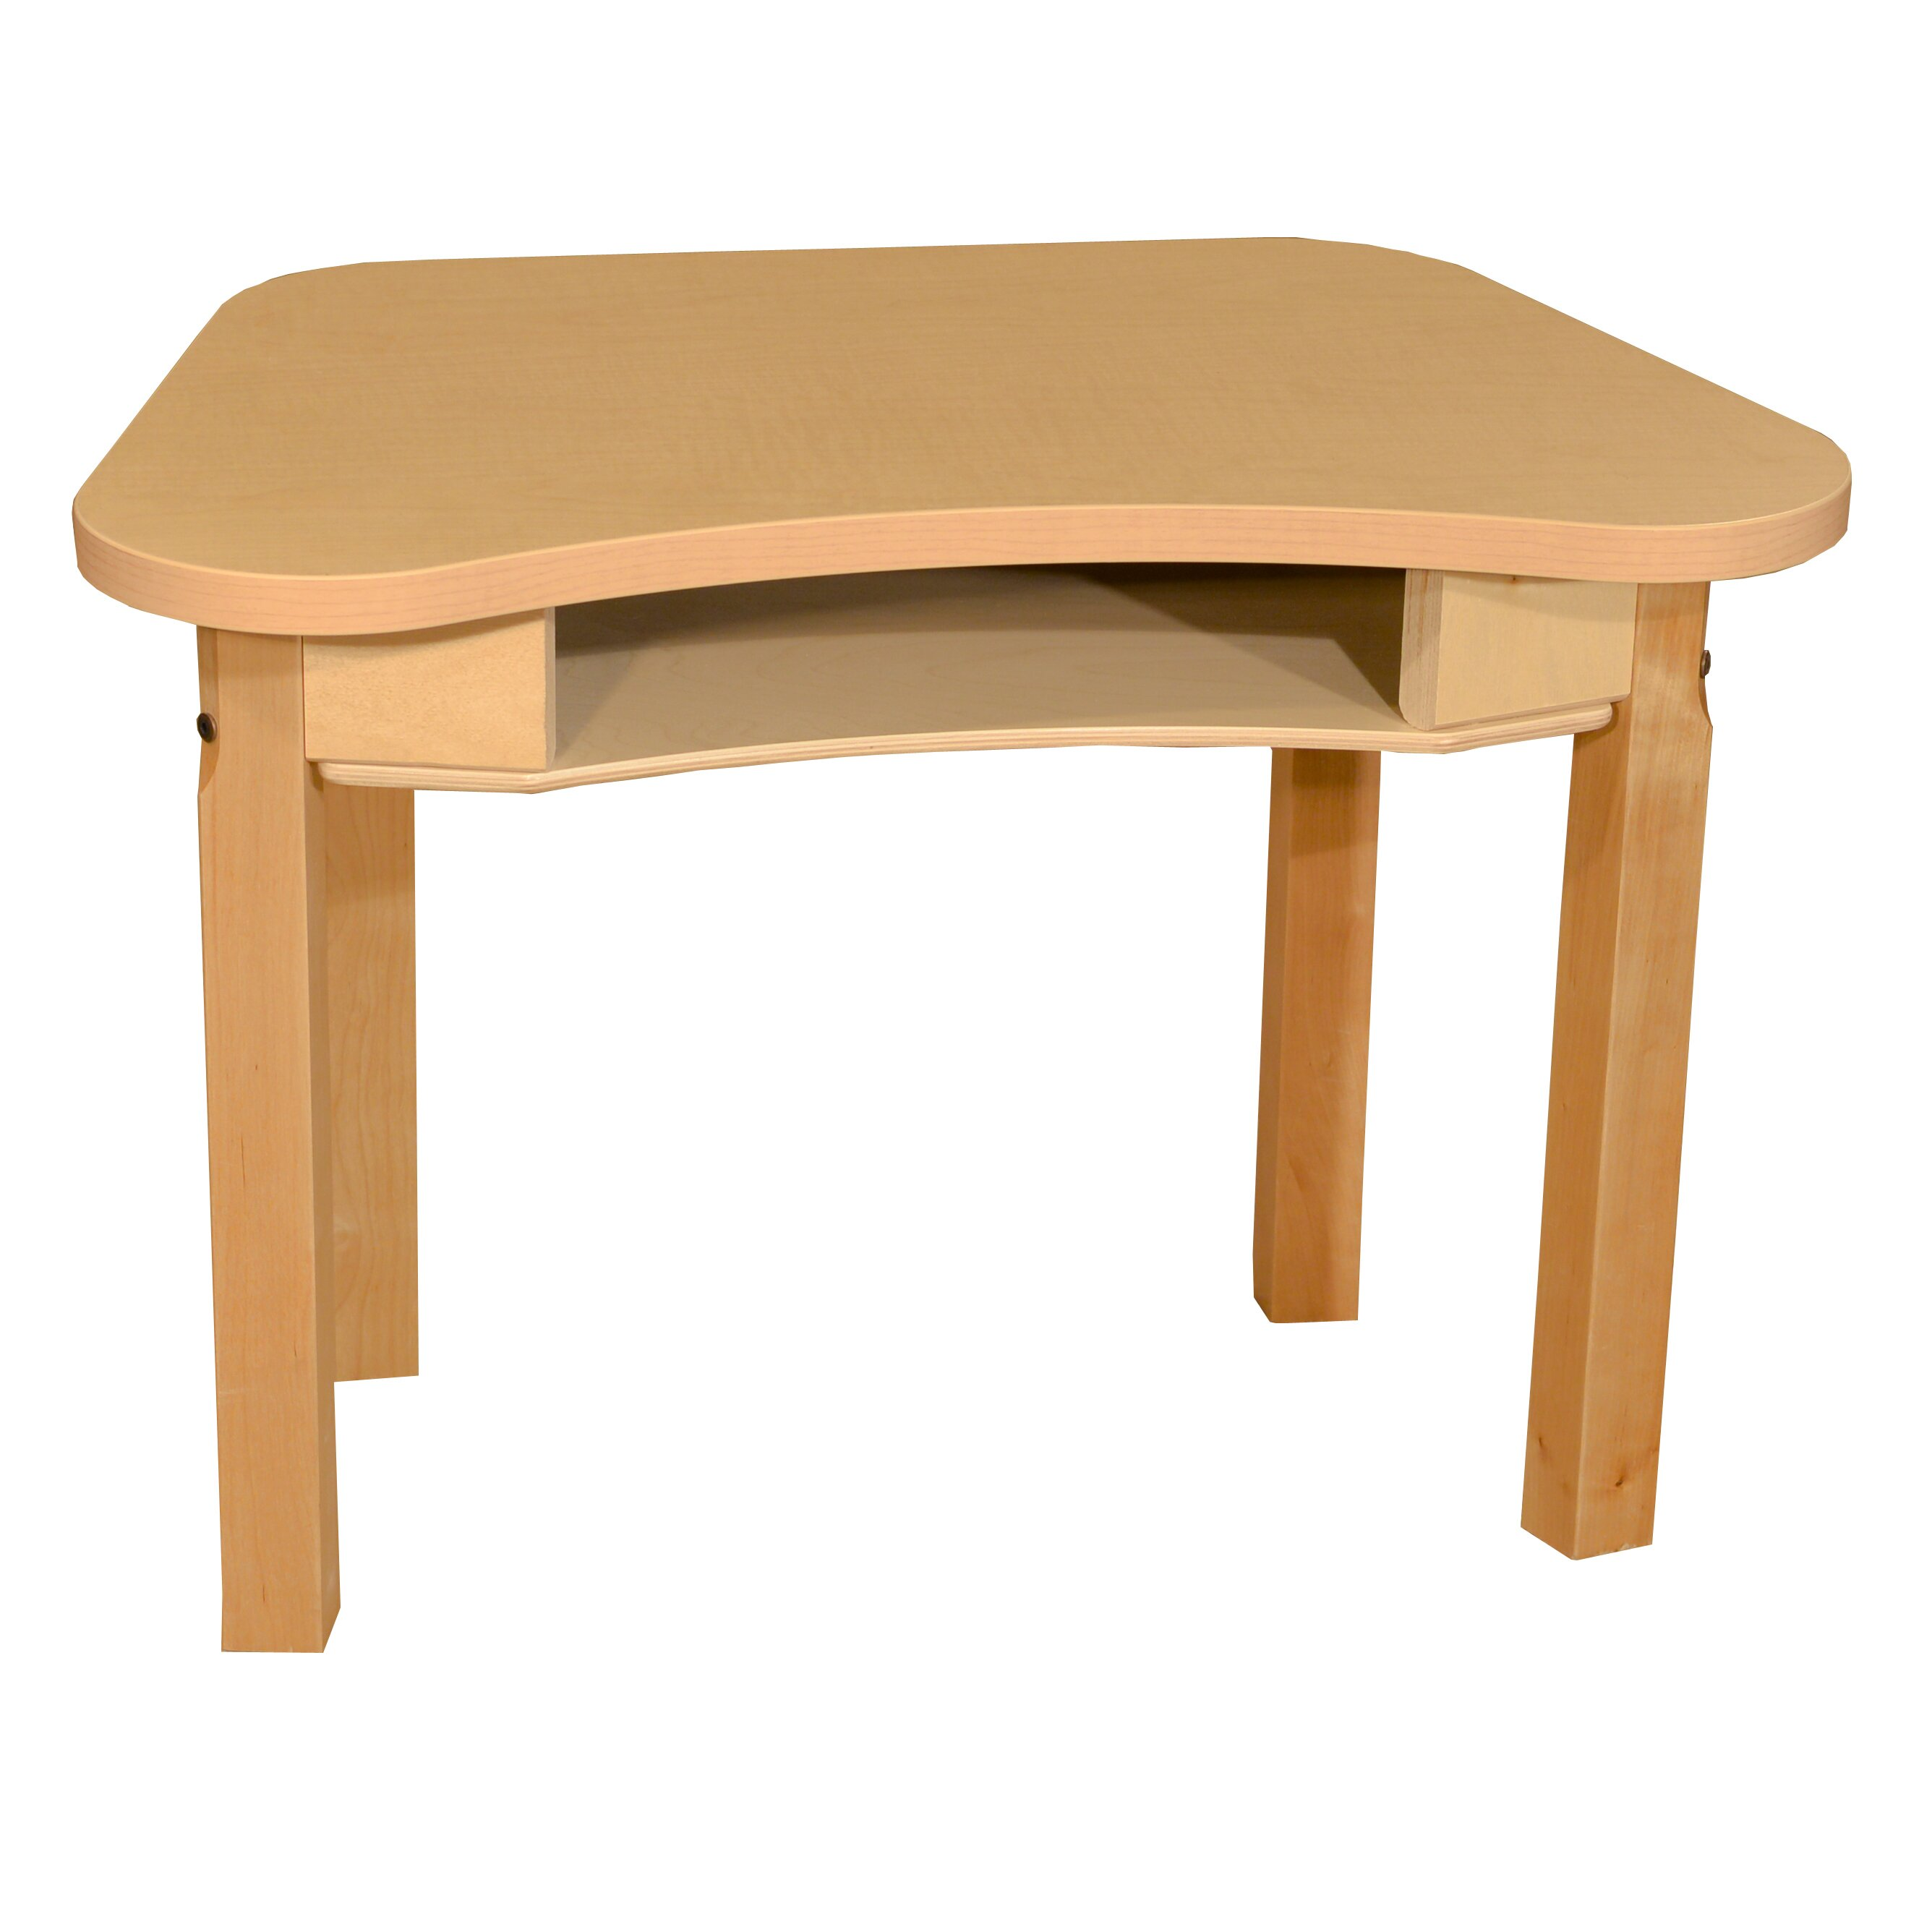 Marvelous photograph of  & Supplies Trapezoid Classroom Tables Wood Designs SKU: WDN2109 with #AD661E color and 2672x2672 pixels